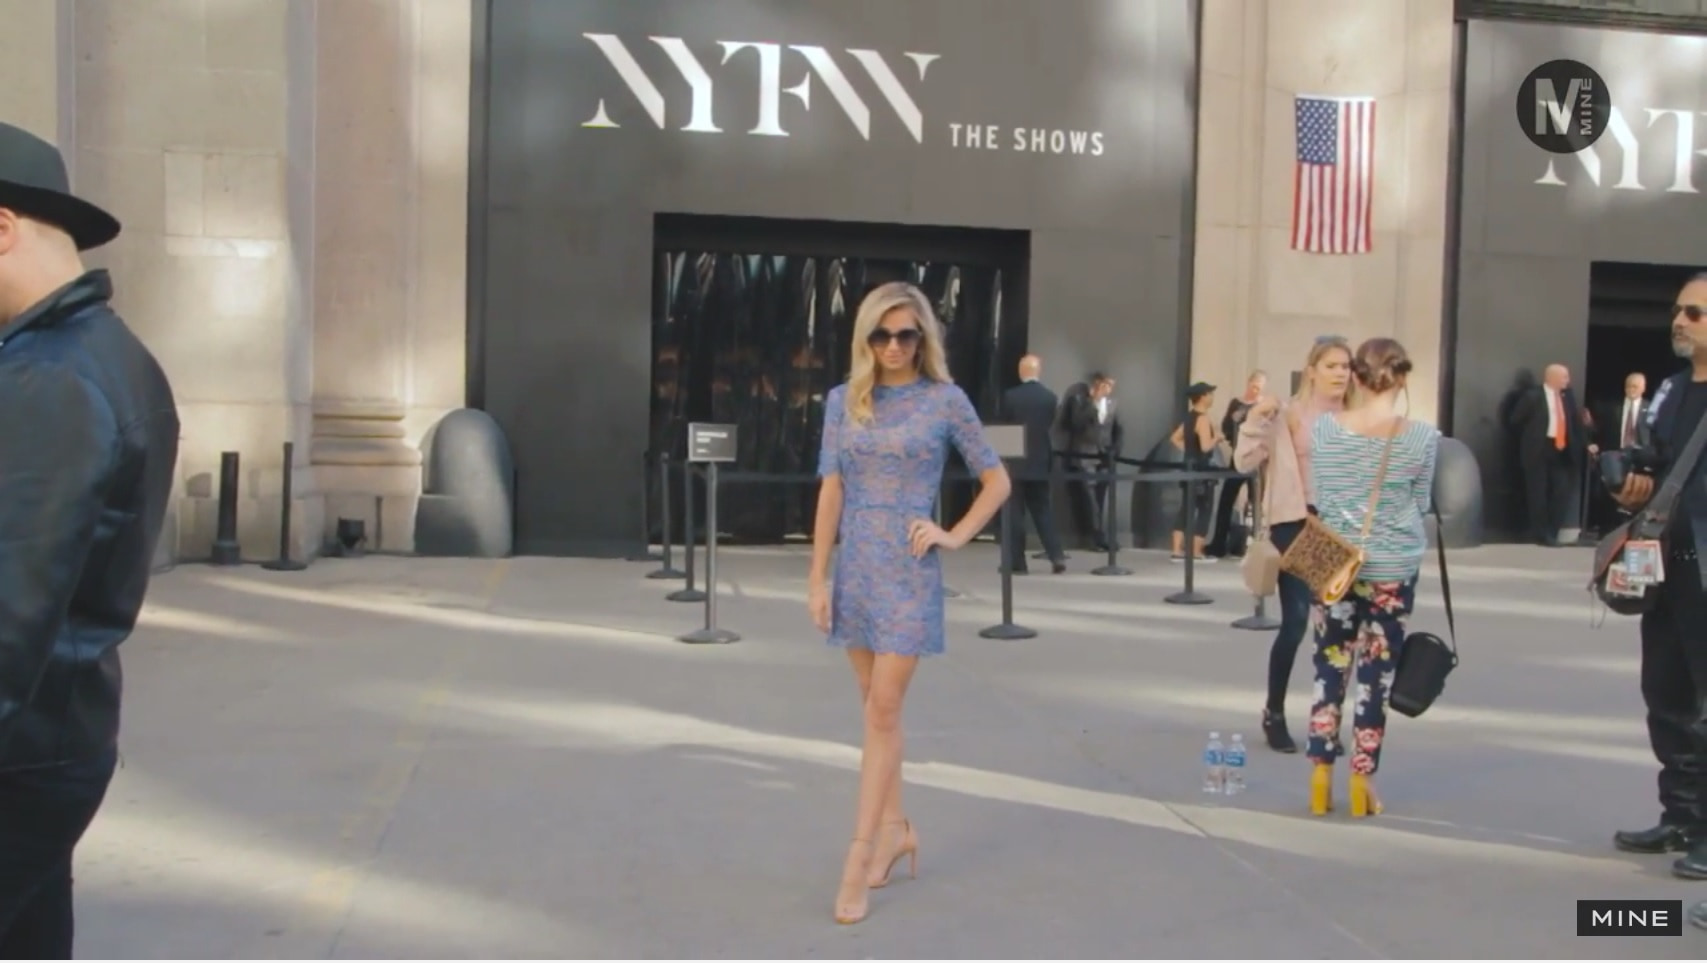 【New York Fashion Week】Skylight at Moynihan Stationの前でパパラッチ